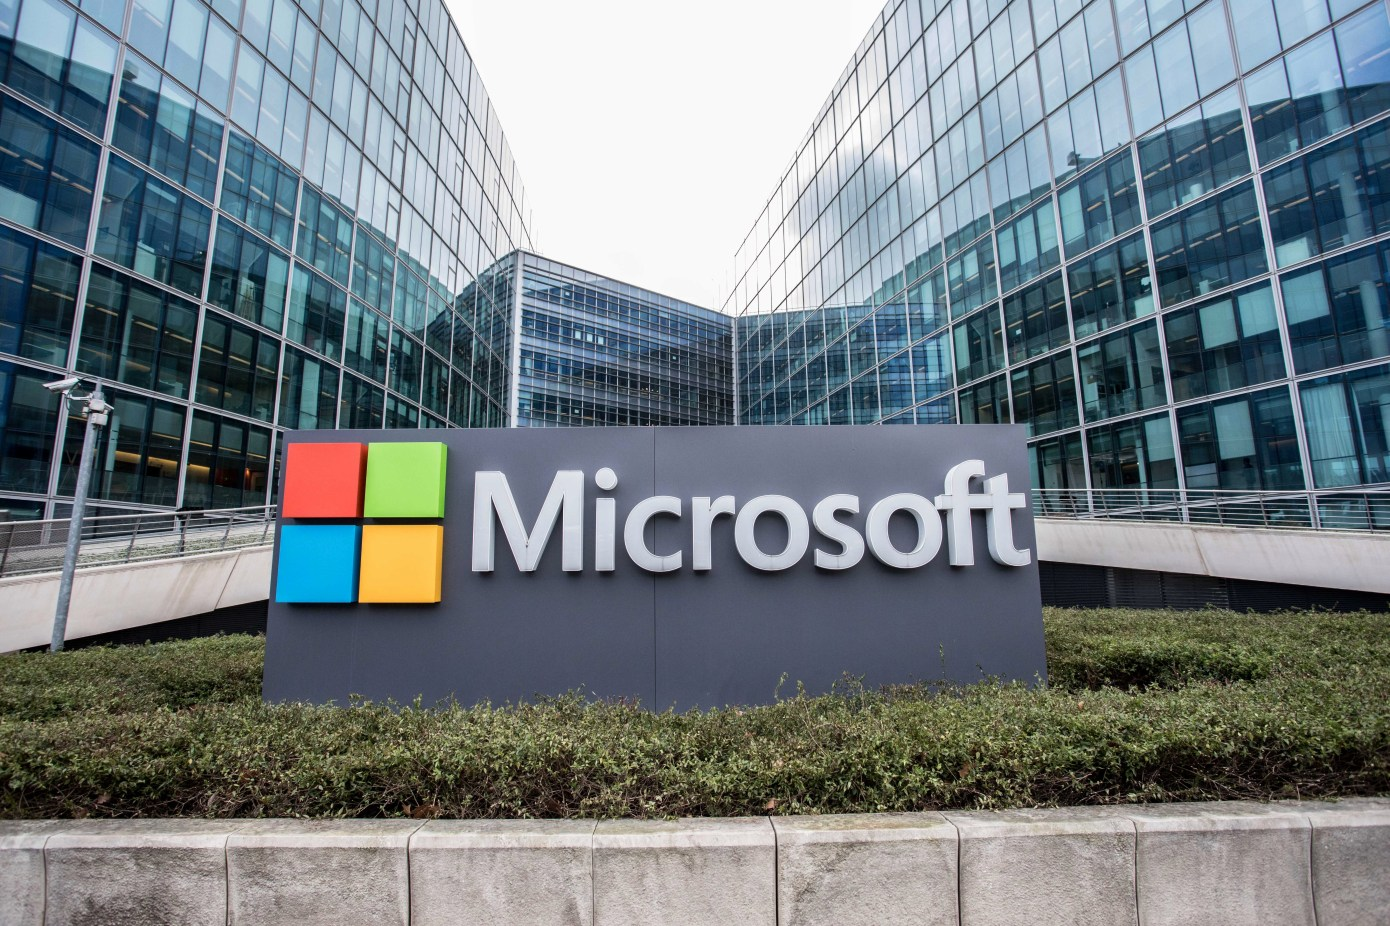 Microsoft is aiming to train about 15,000 workers by 2022 on AI skills